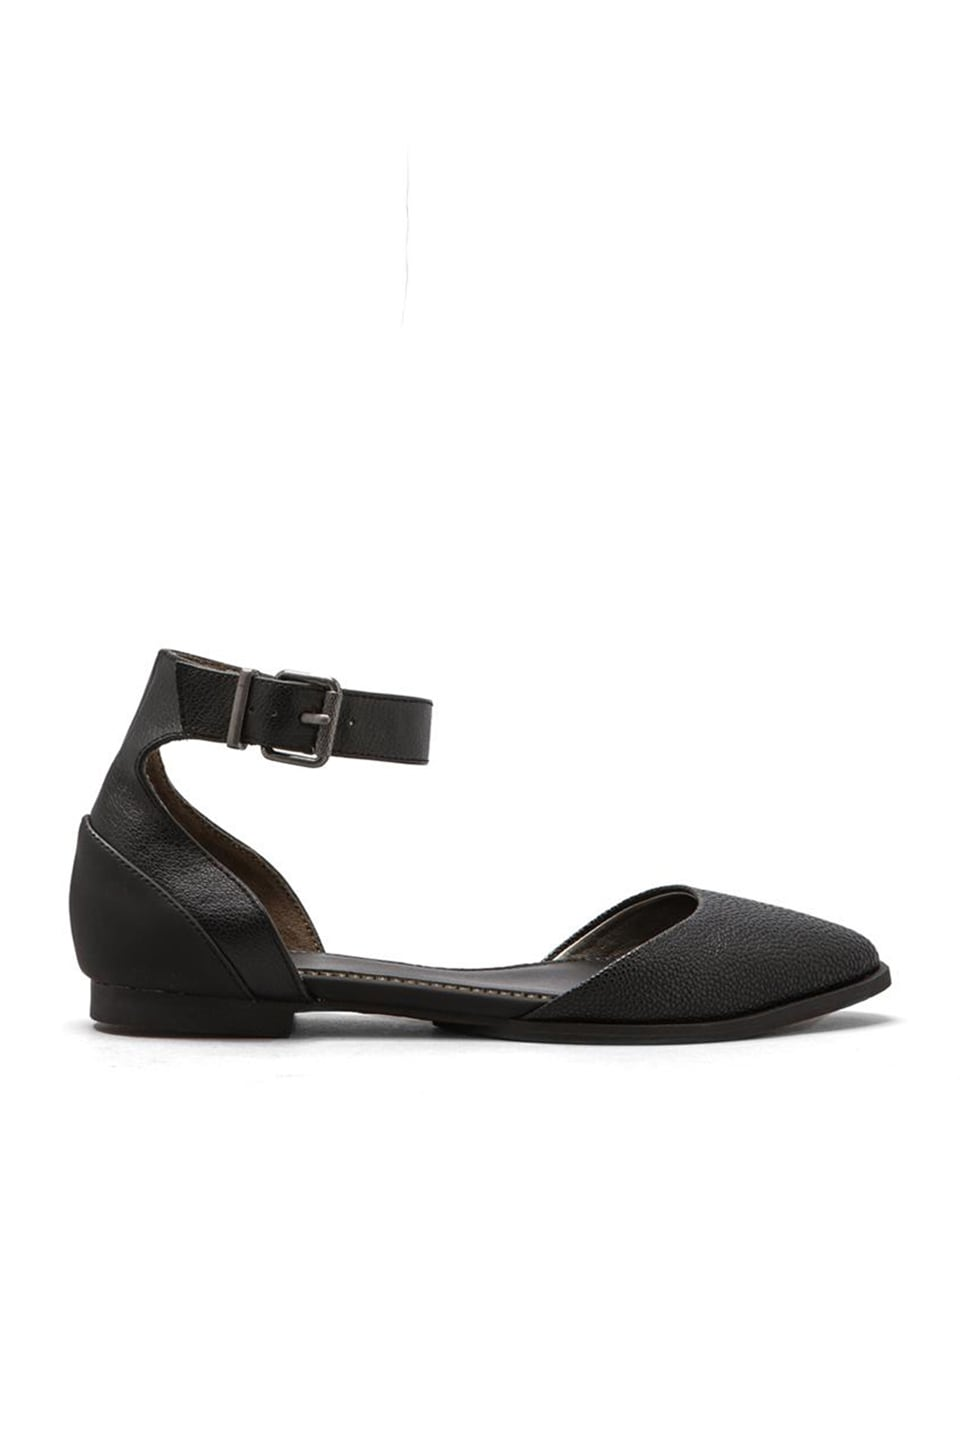 Circus by Sam Edelman Benson Flat in Black